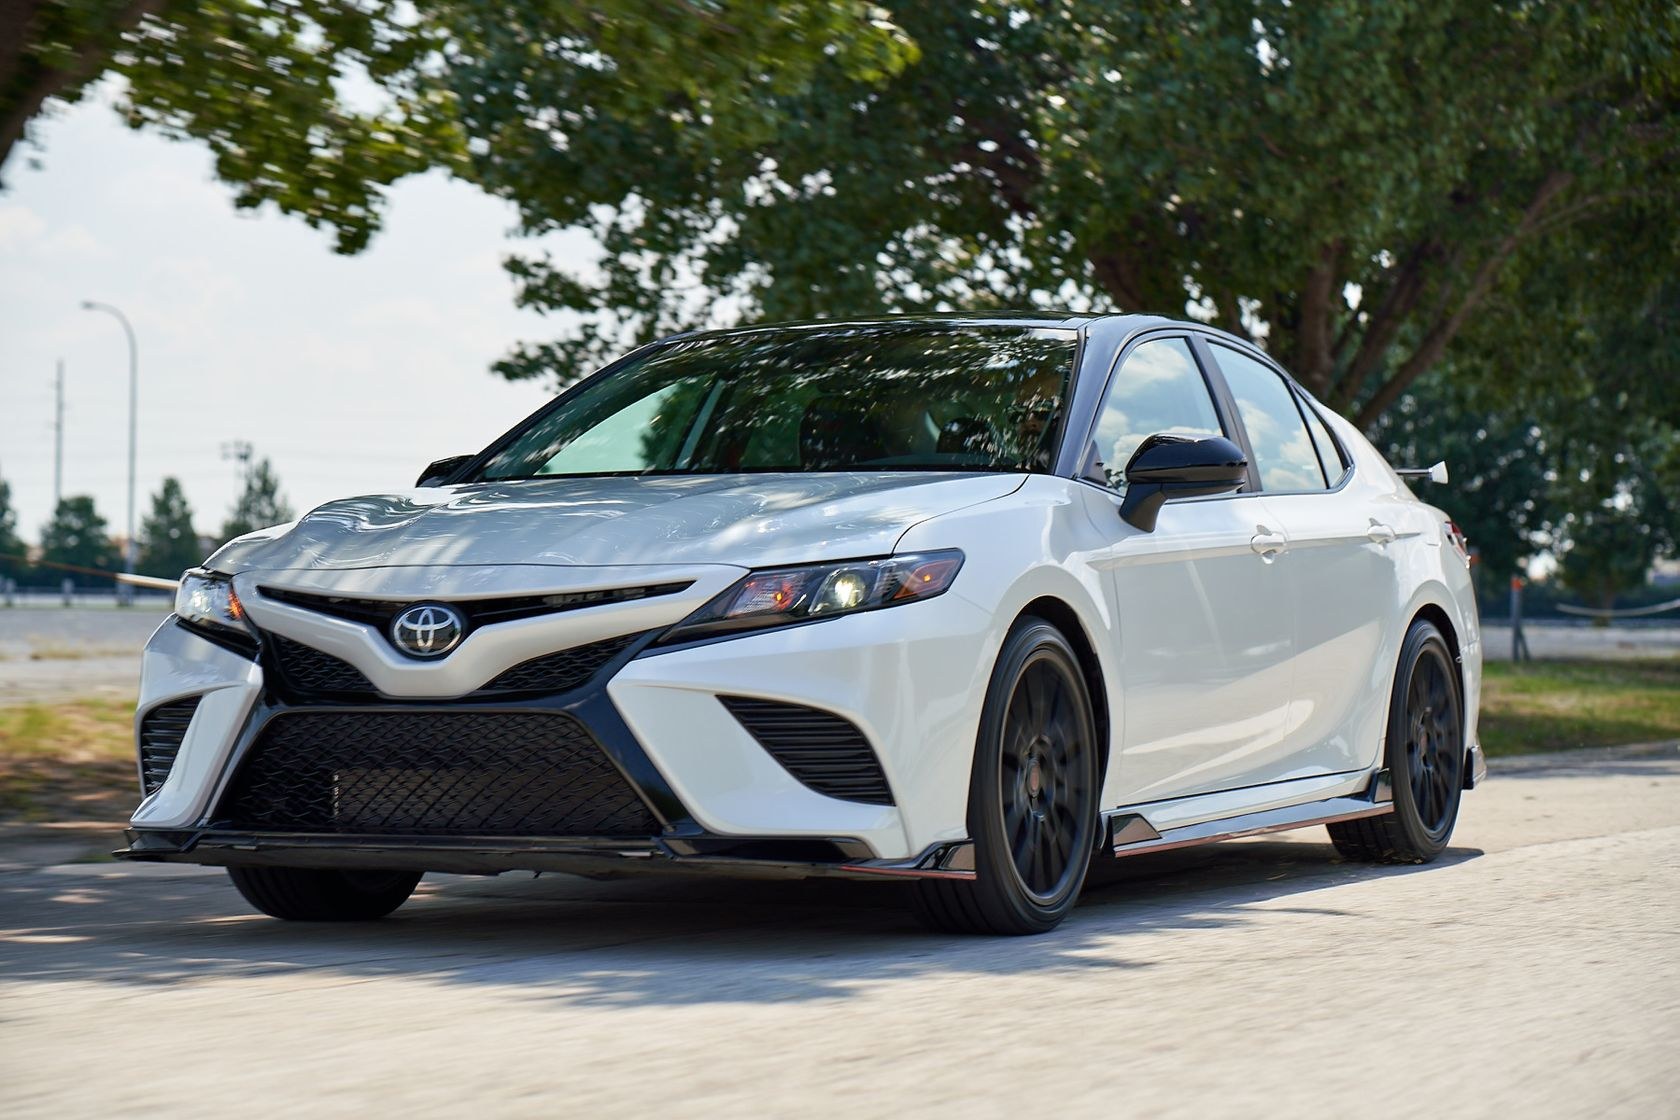 2020 Toyota Camry TRD Windchill Pearl Midnight Roof 001